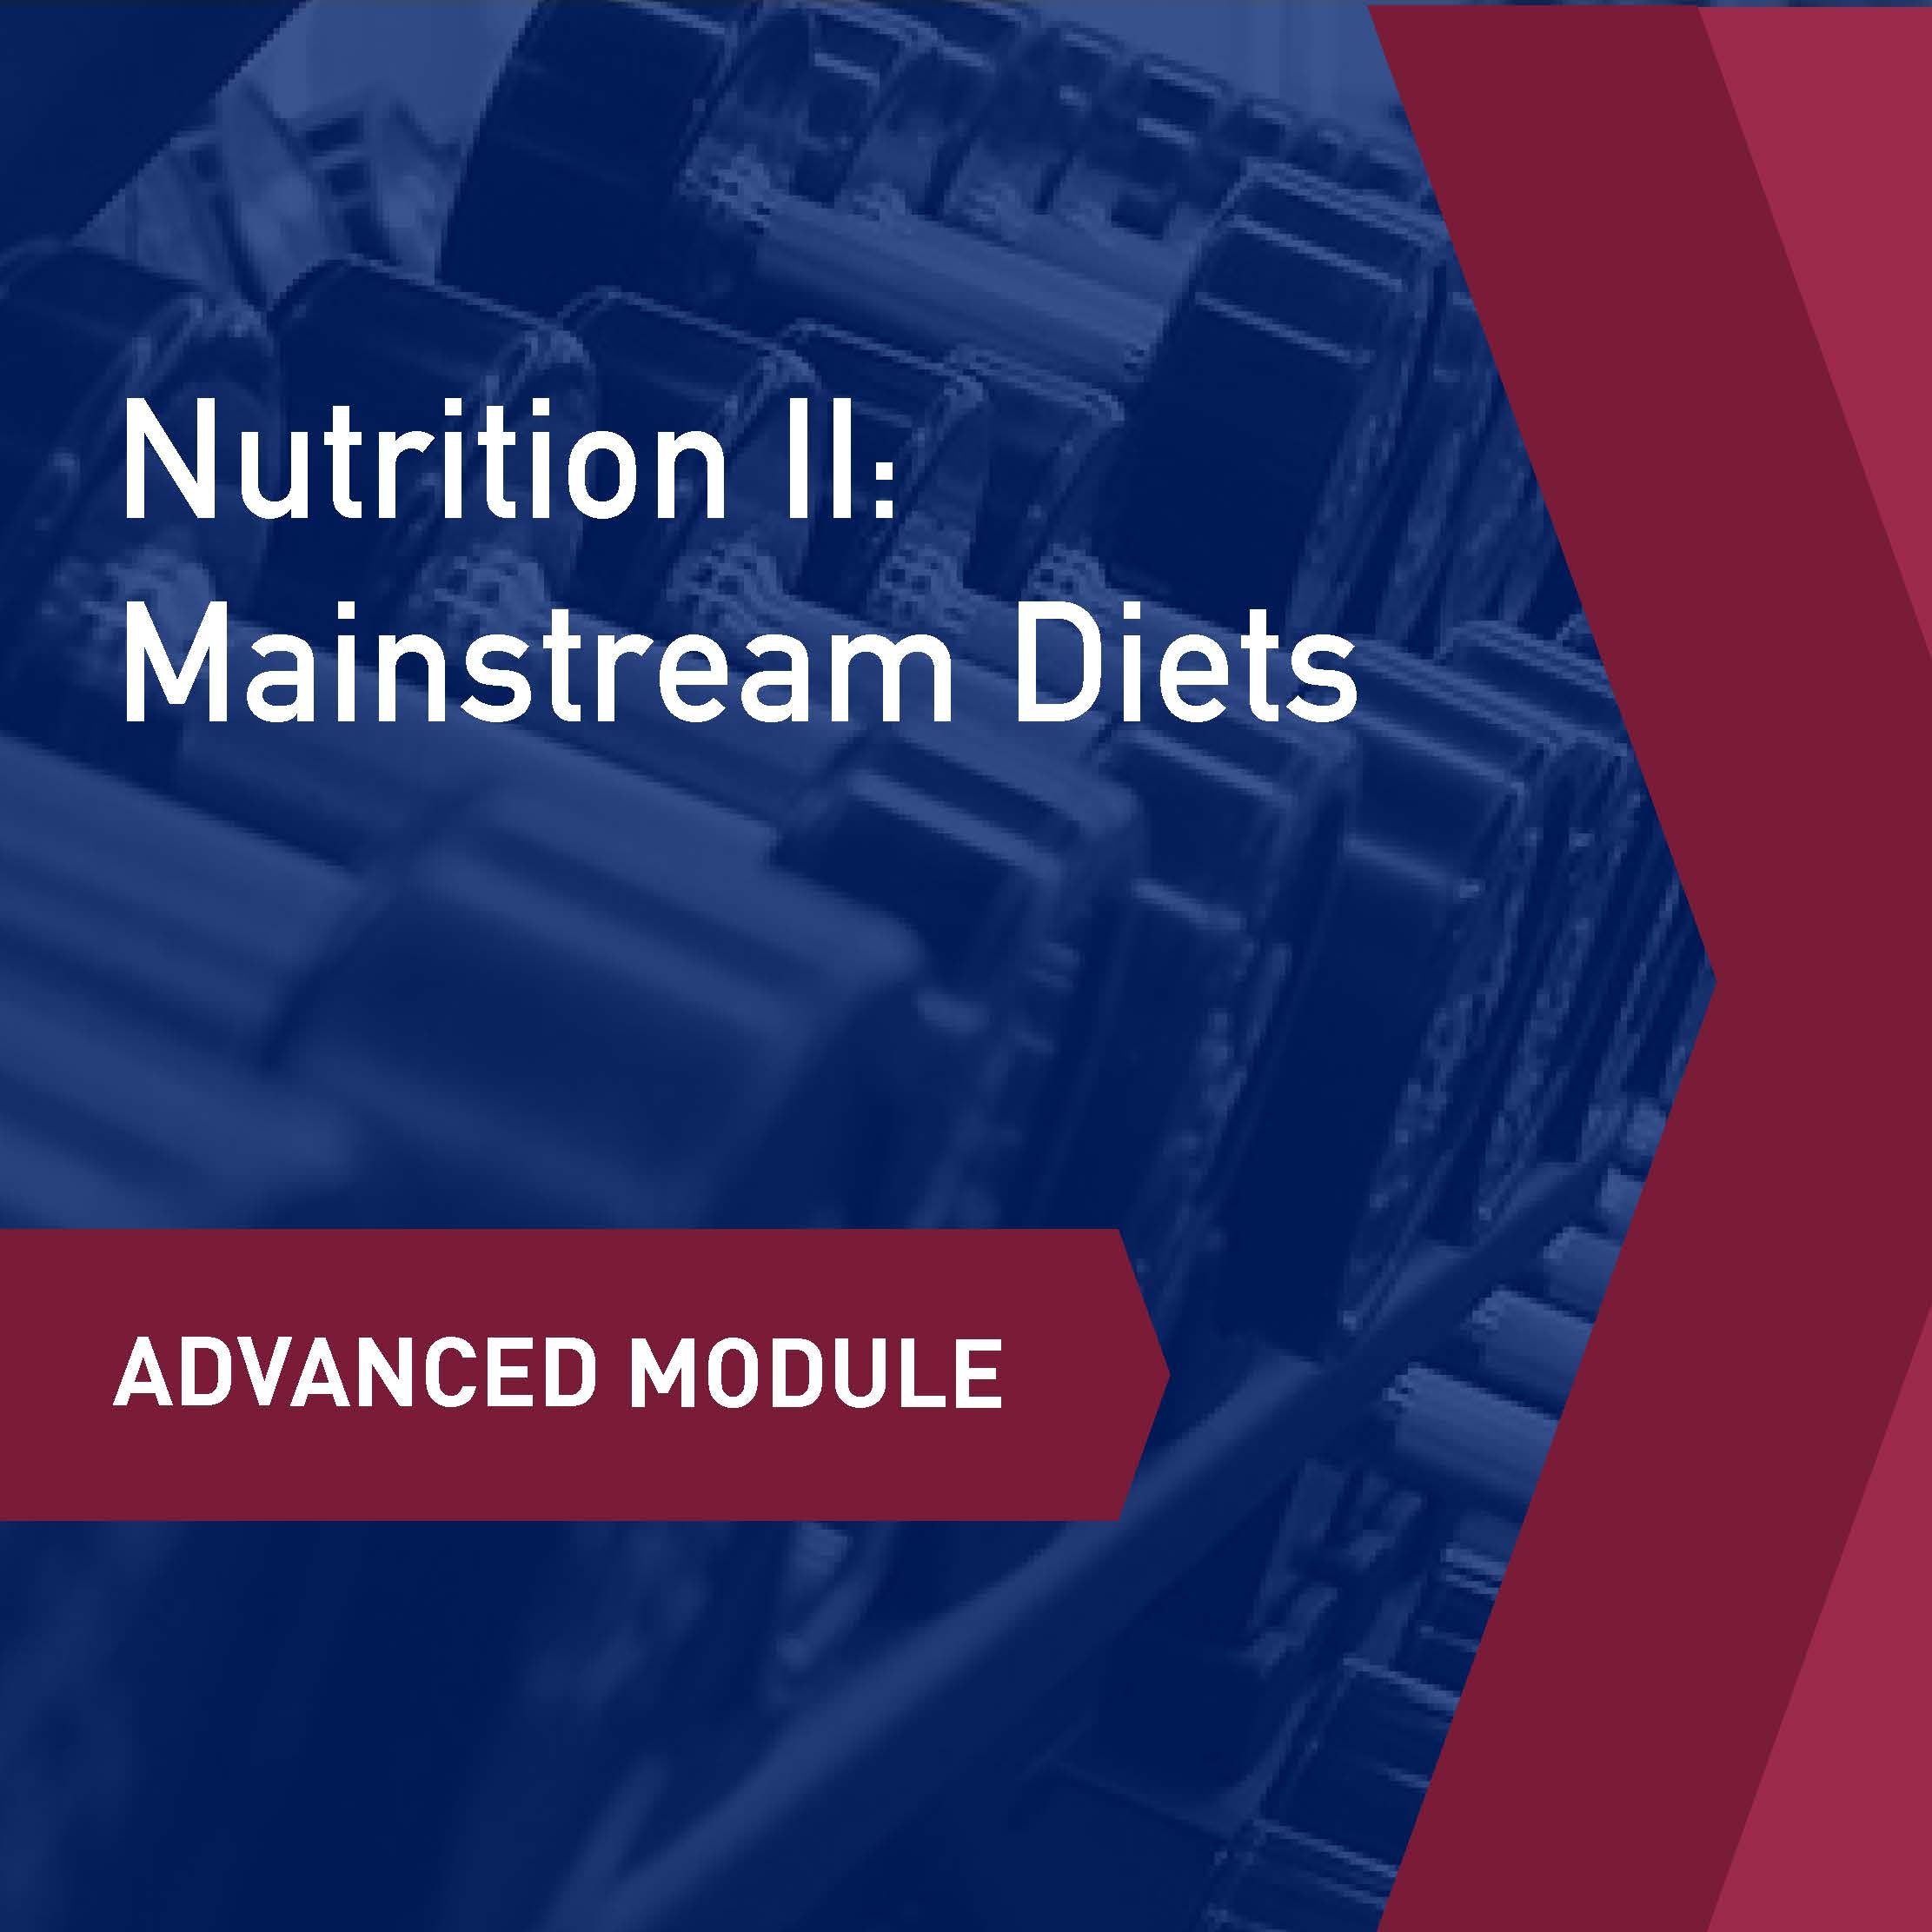 Advanced Learning Module: Nutrition II - Mainstream Diets